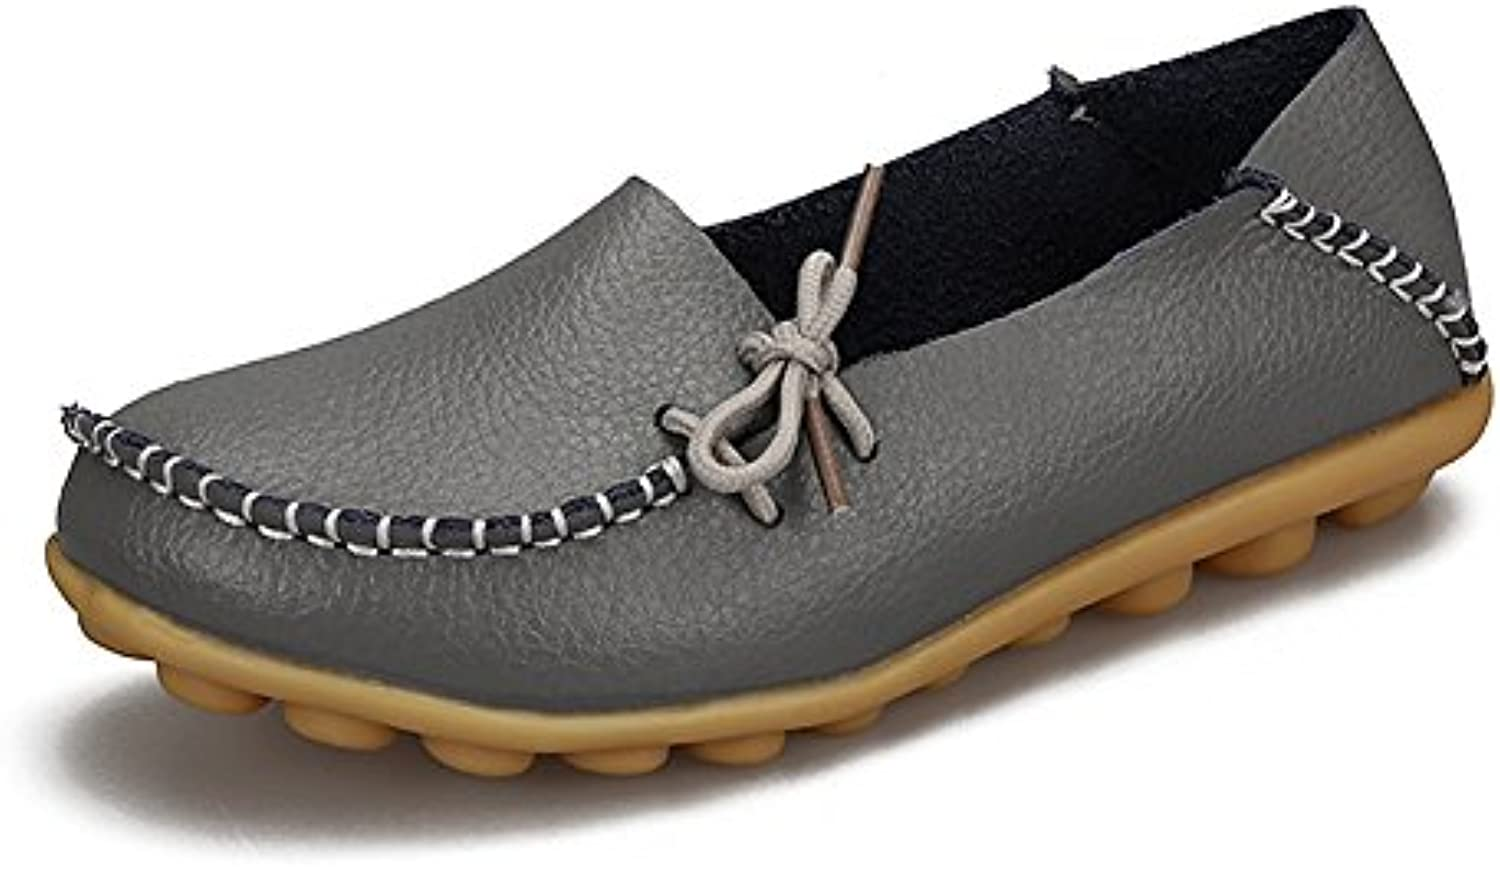 JoansamLoafer Flat - Sandalias Mujer, Color Gris, Talla 36